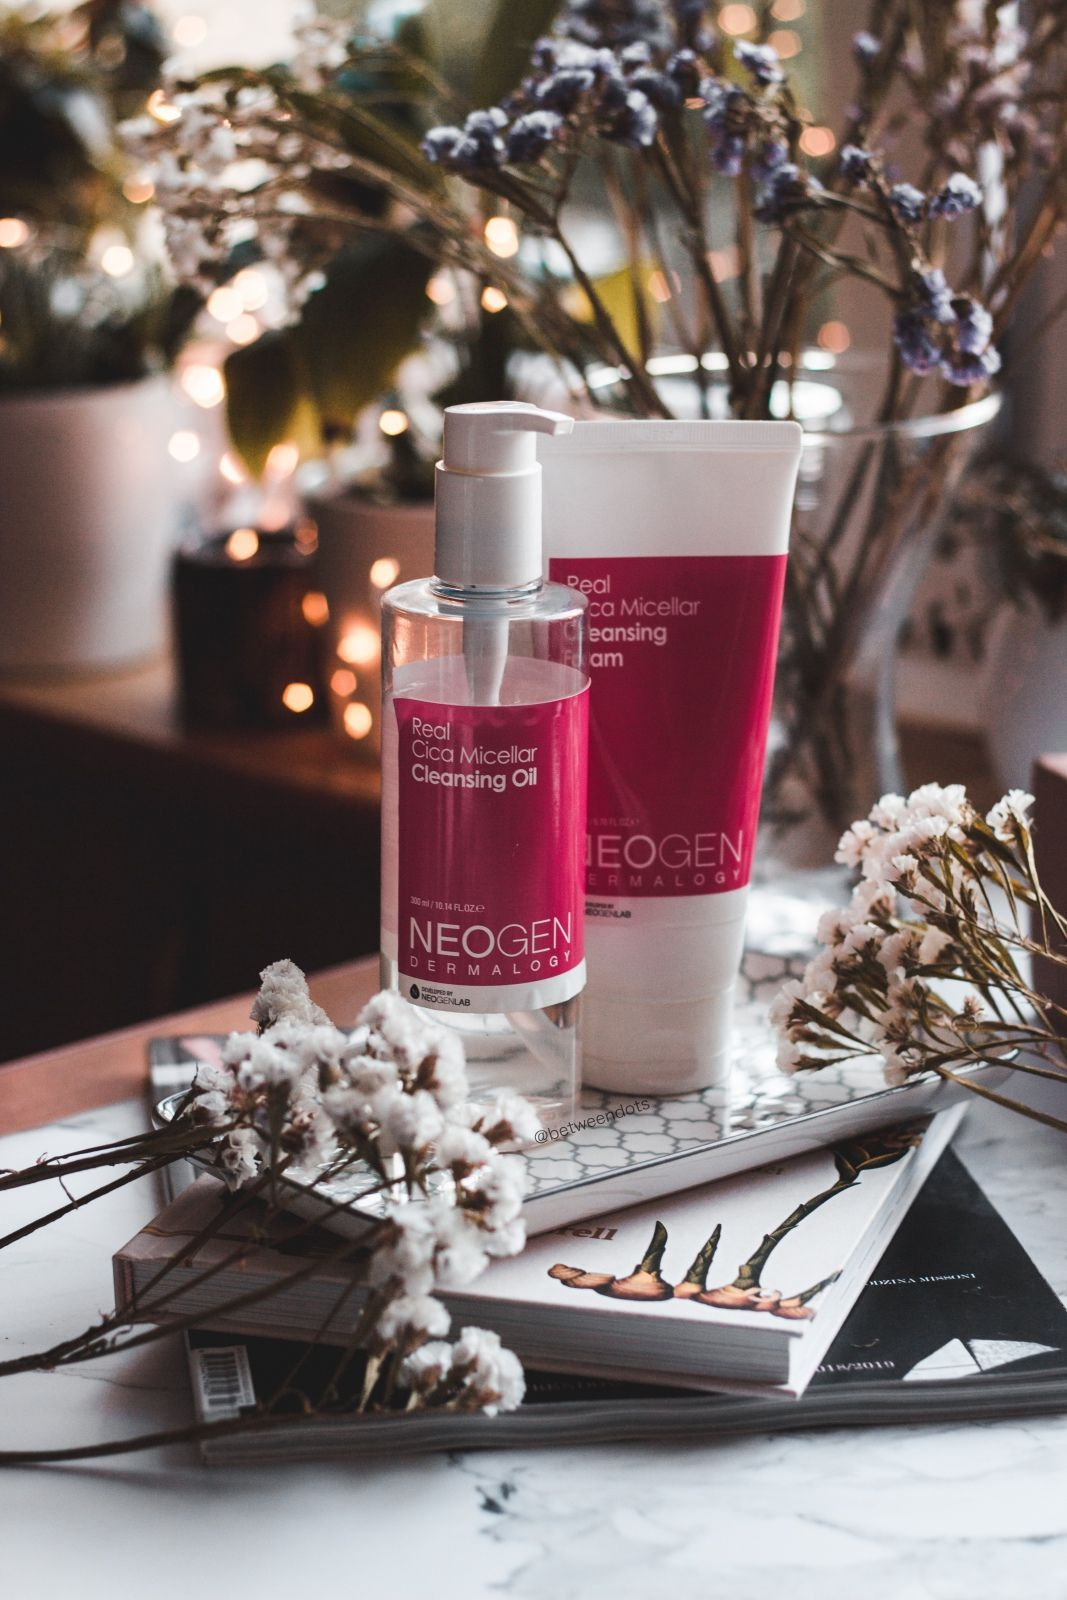 Neogen Real Cica Micellar Cleansing Foam And Neogen Real Cica Micellar Cleansing Oil I Feel Like 201 Organic Skin Care Diy Micellar Cleansing Japanese Skincare